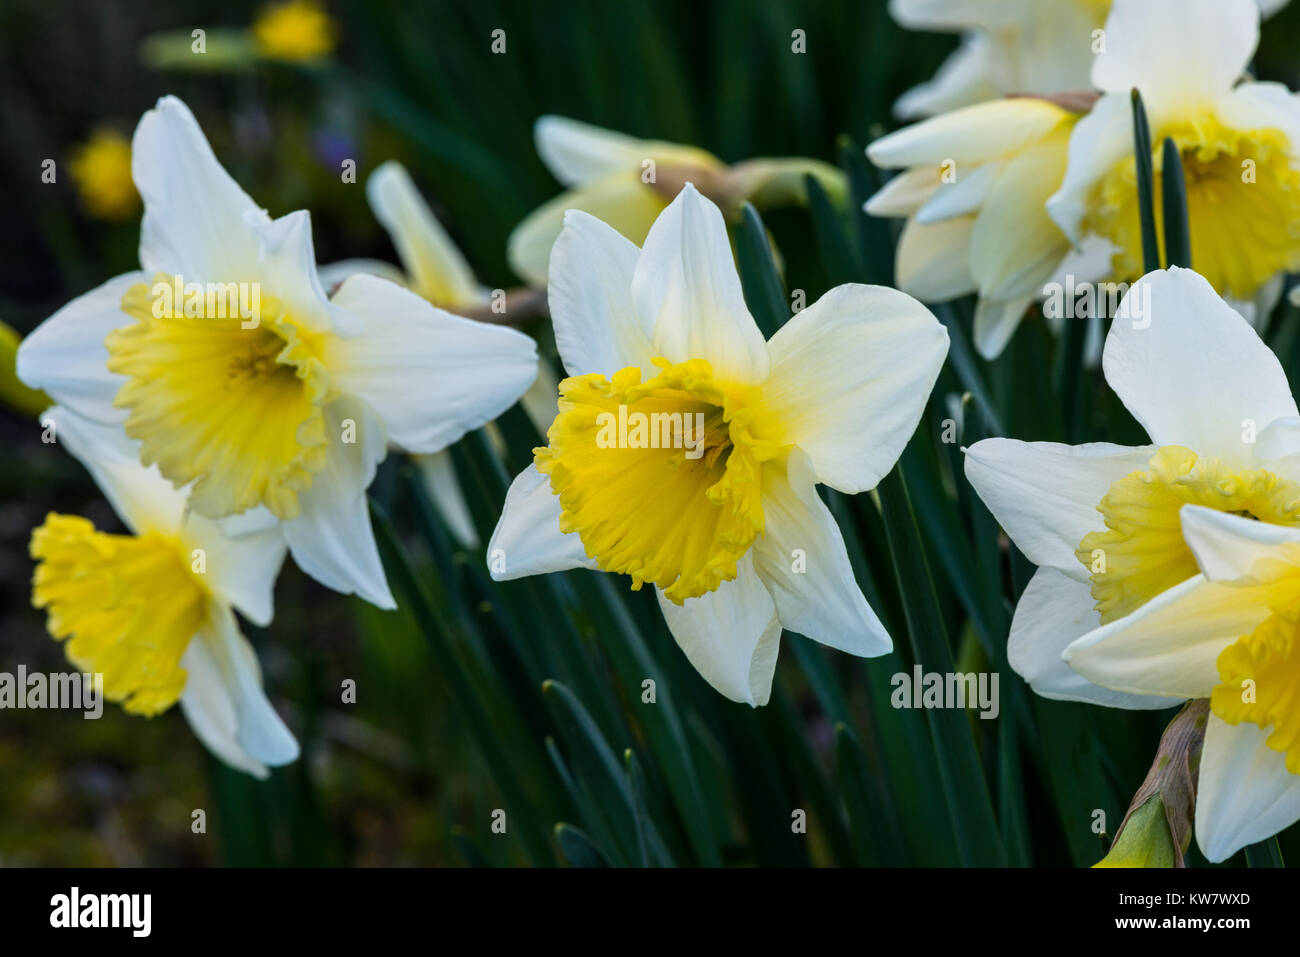 Spring Flower Early Flowering Yellow Flower Daffodil Gardening